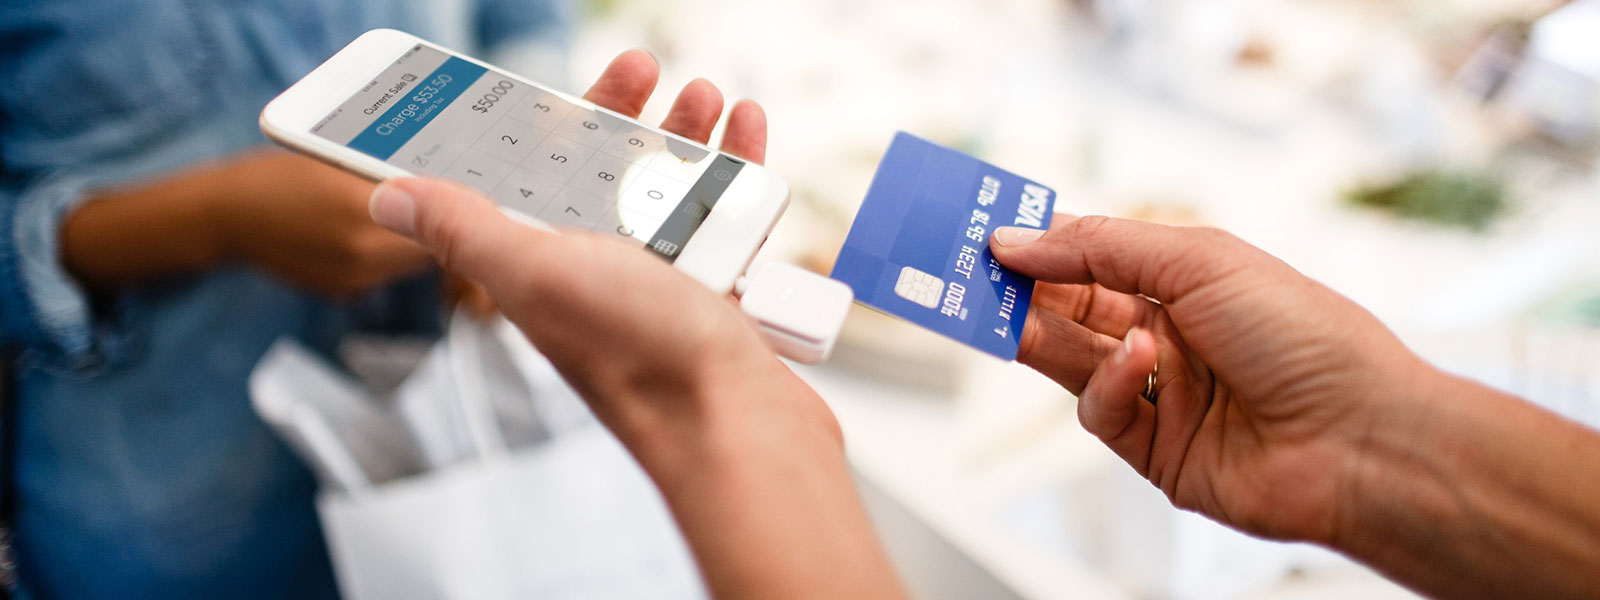 mobile payments using credit card